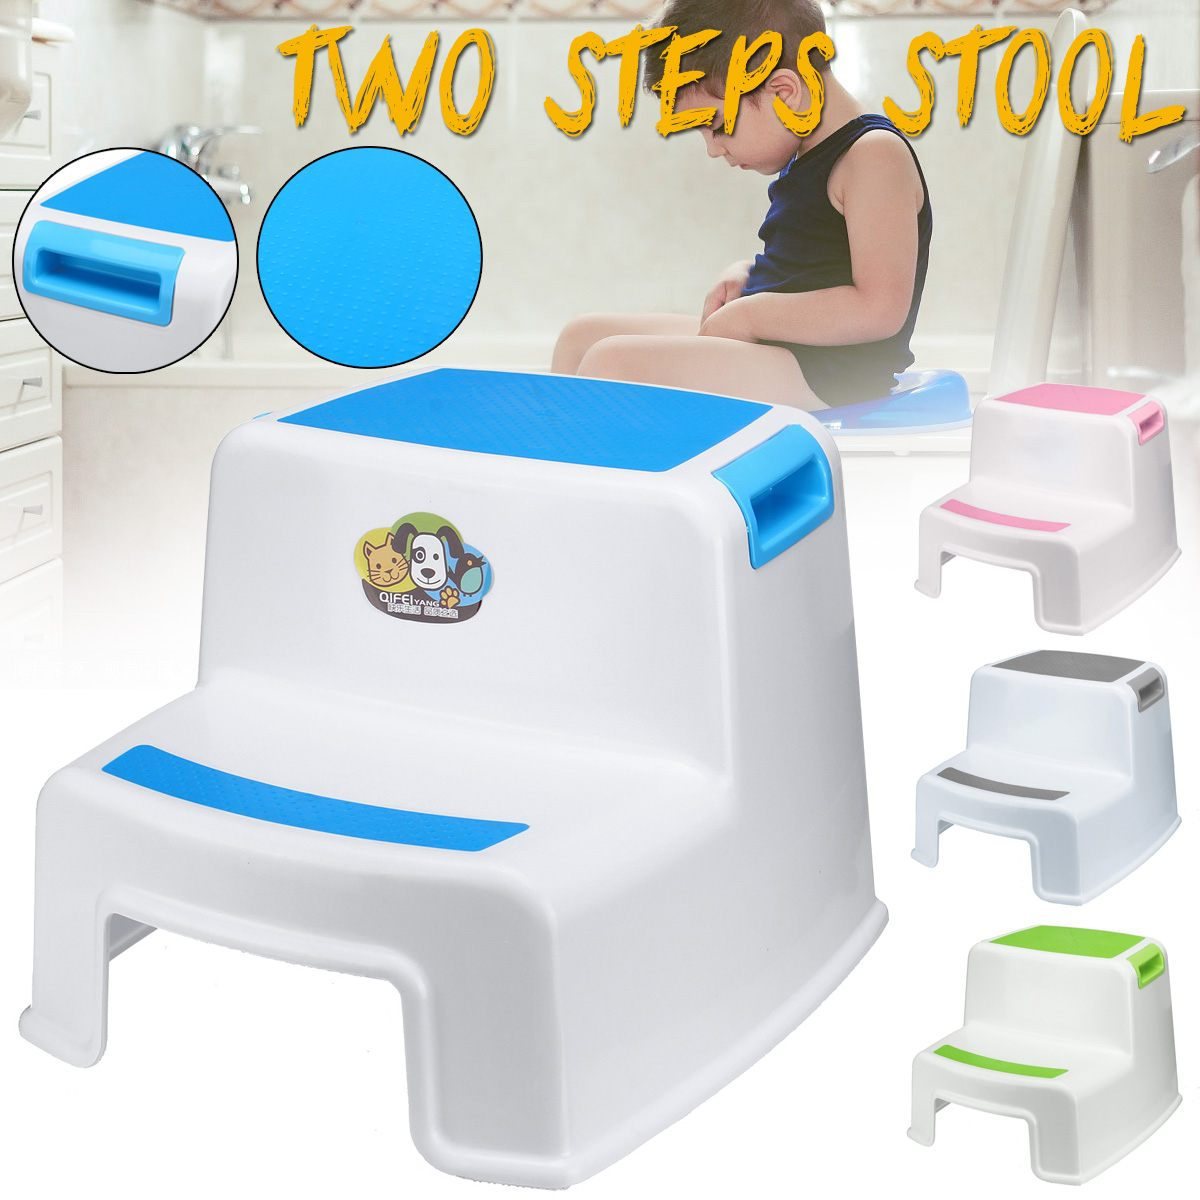 2 Steps Double Stool Plastic 280 lbs for Kids Anti-Slip Child Ladder New Childrens Non-slip Feet Increase Bathroom Toilet Stool2 Steps Double Stool Plastic 280 lbs for Kids Anti-Slip Child Ladder New Childrens Non-slip Feet Increase Bathroom Toilet Stool